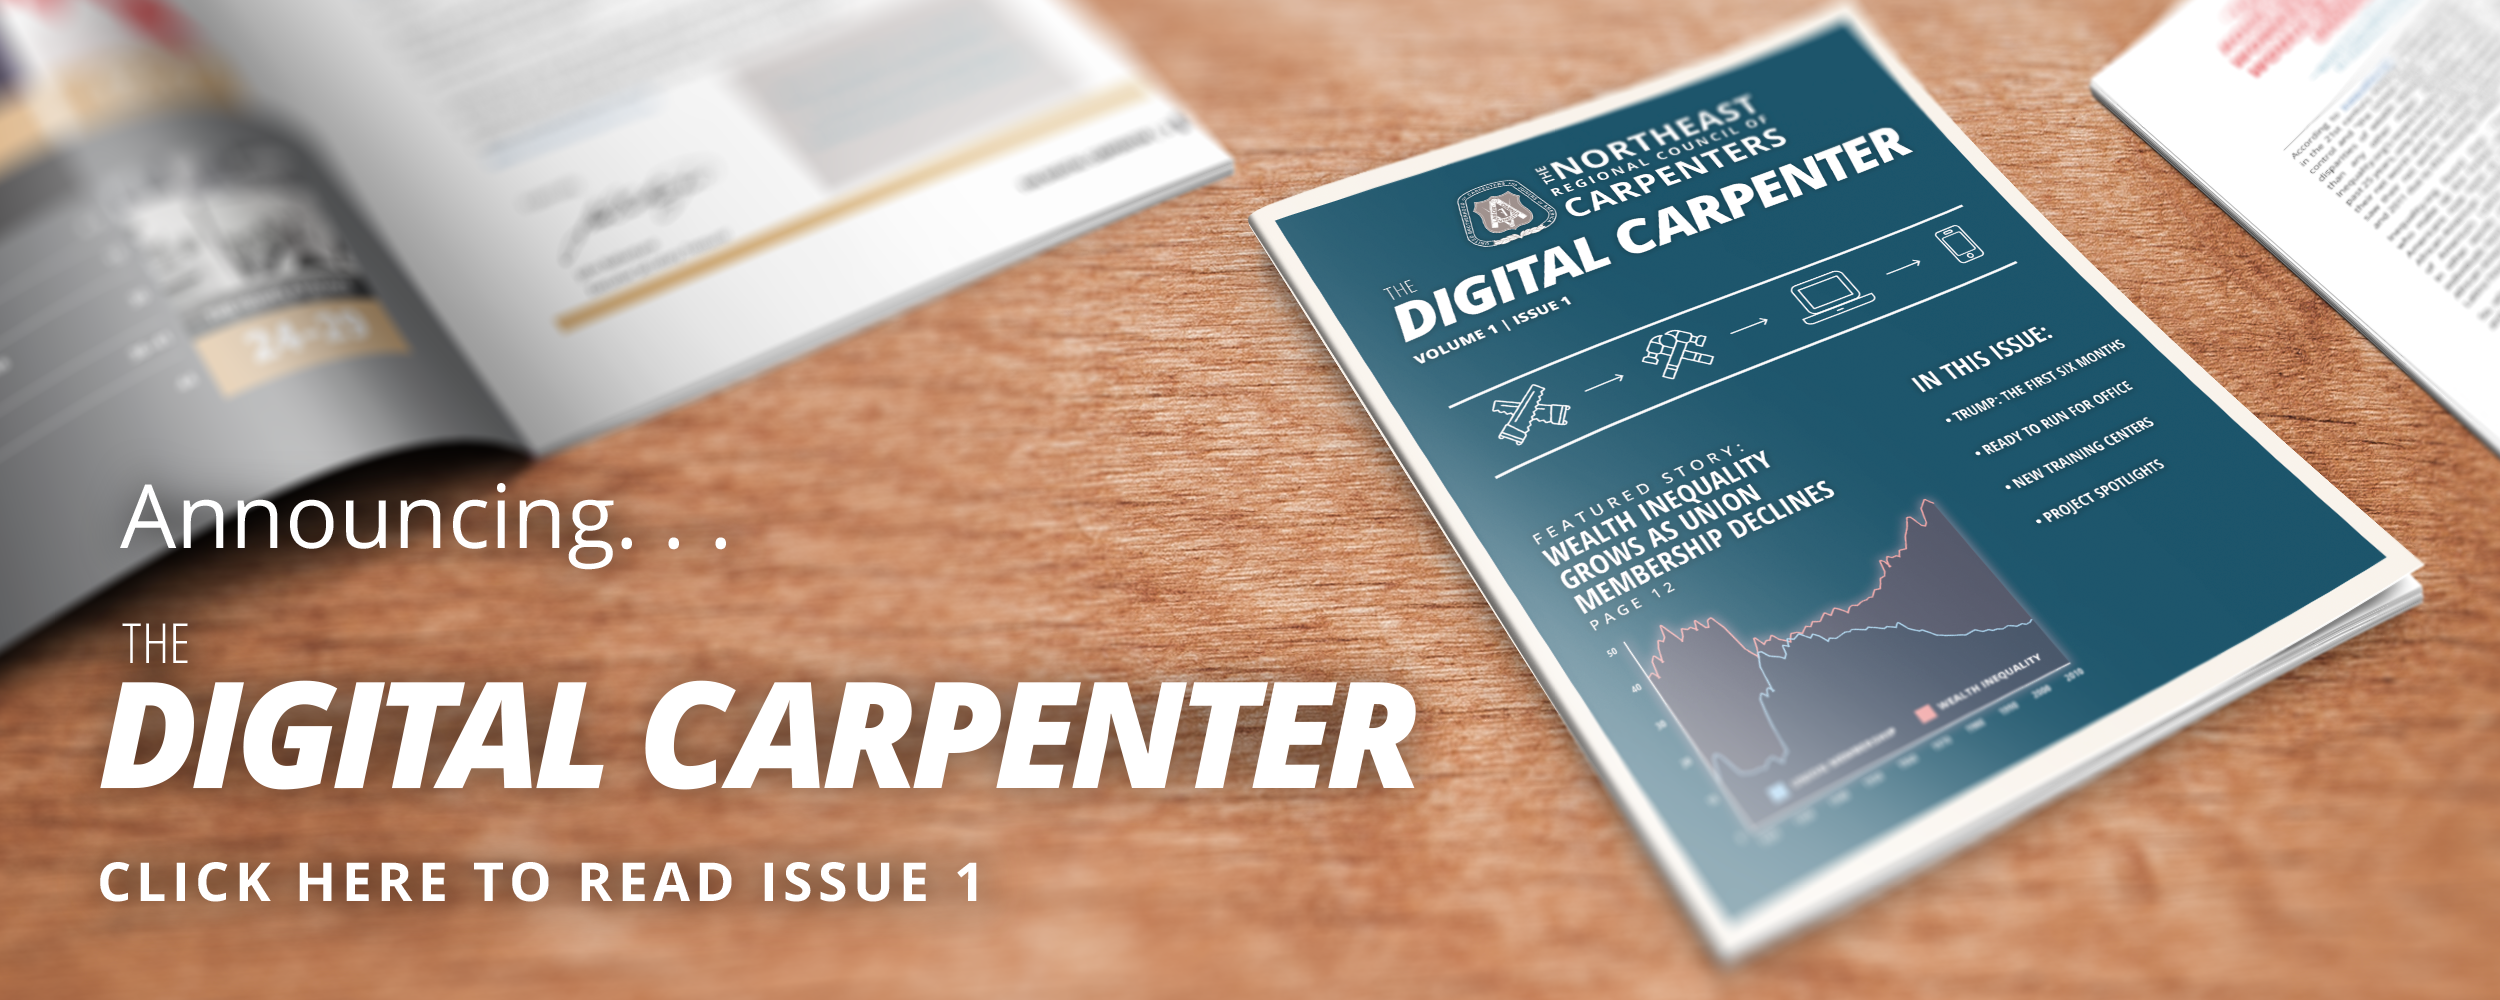 digital-carpenter-slide.png